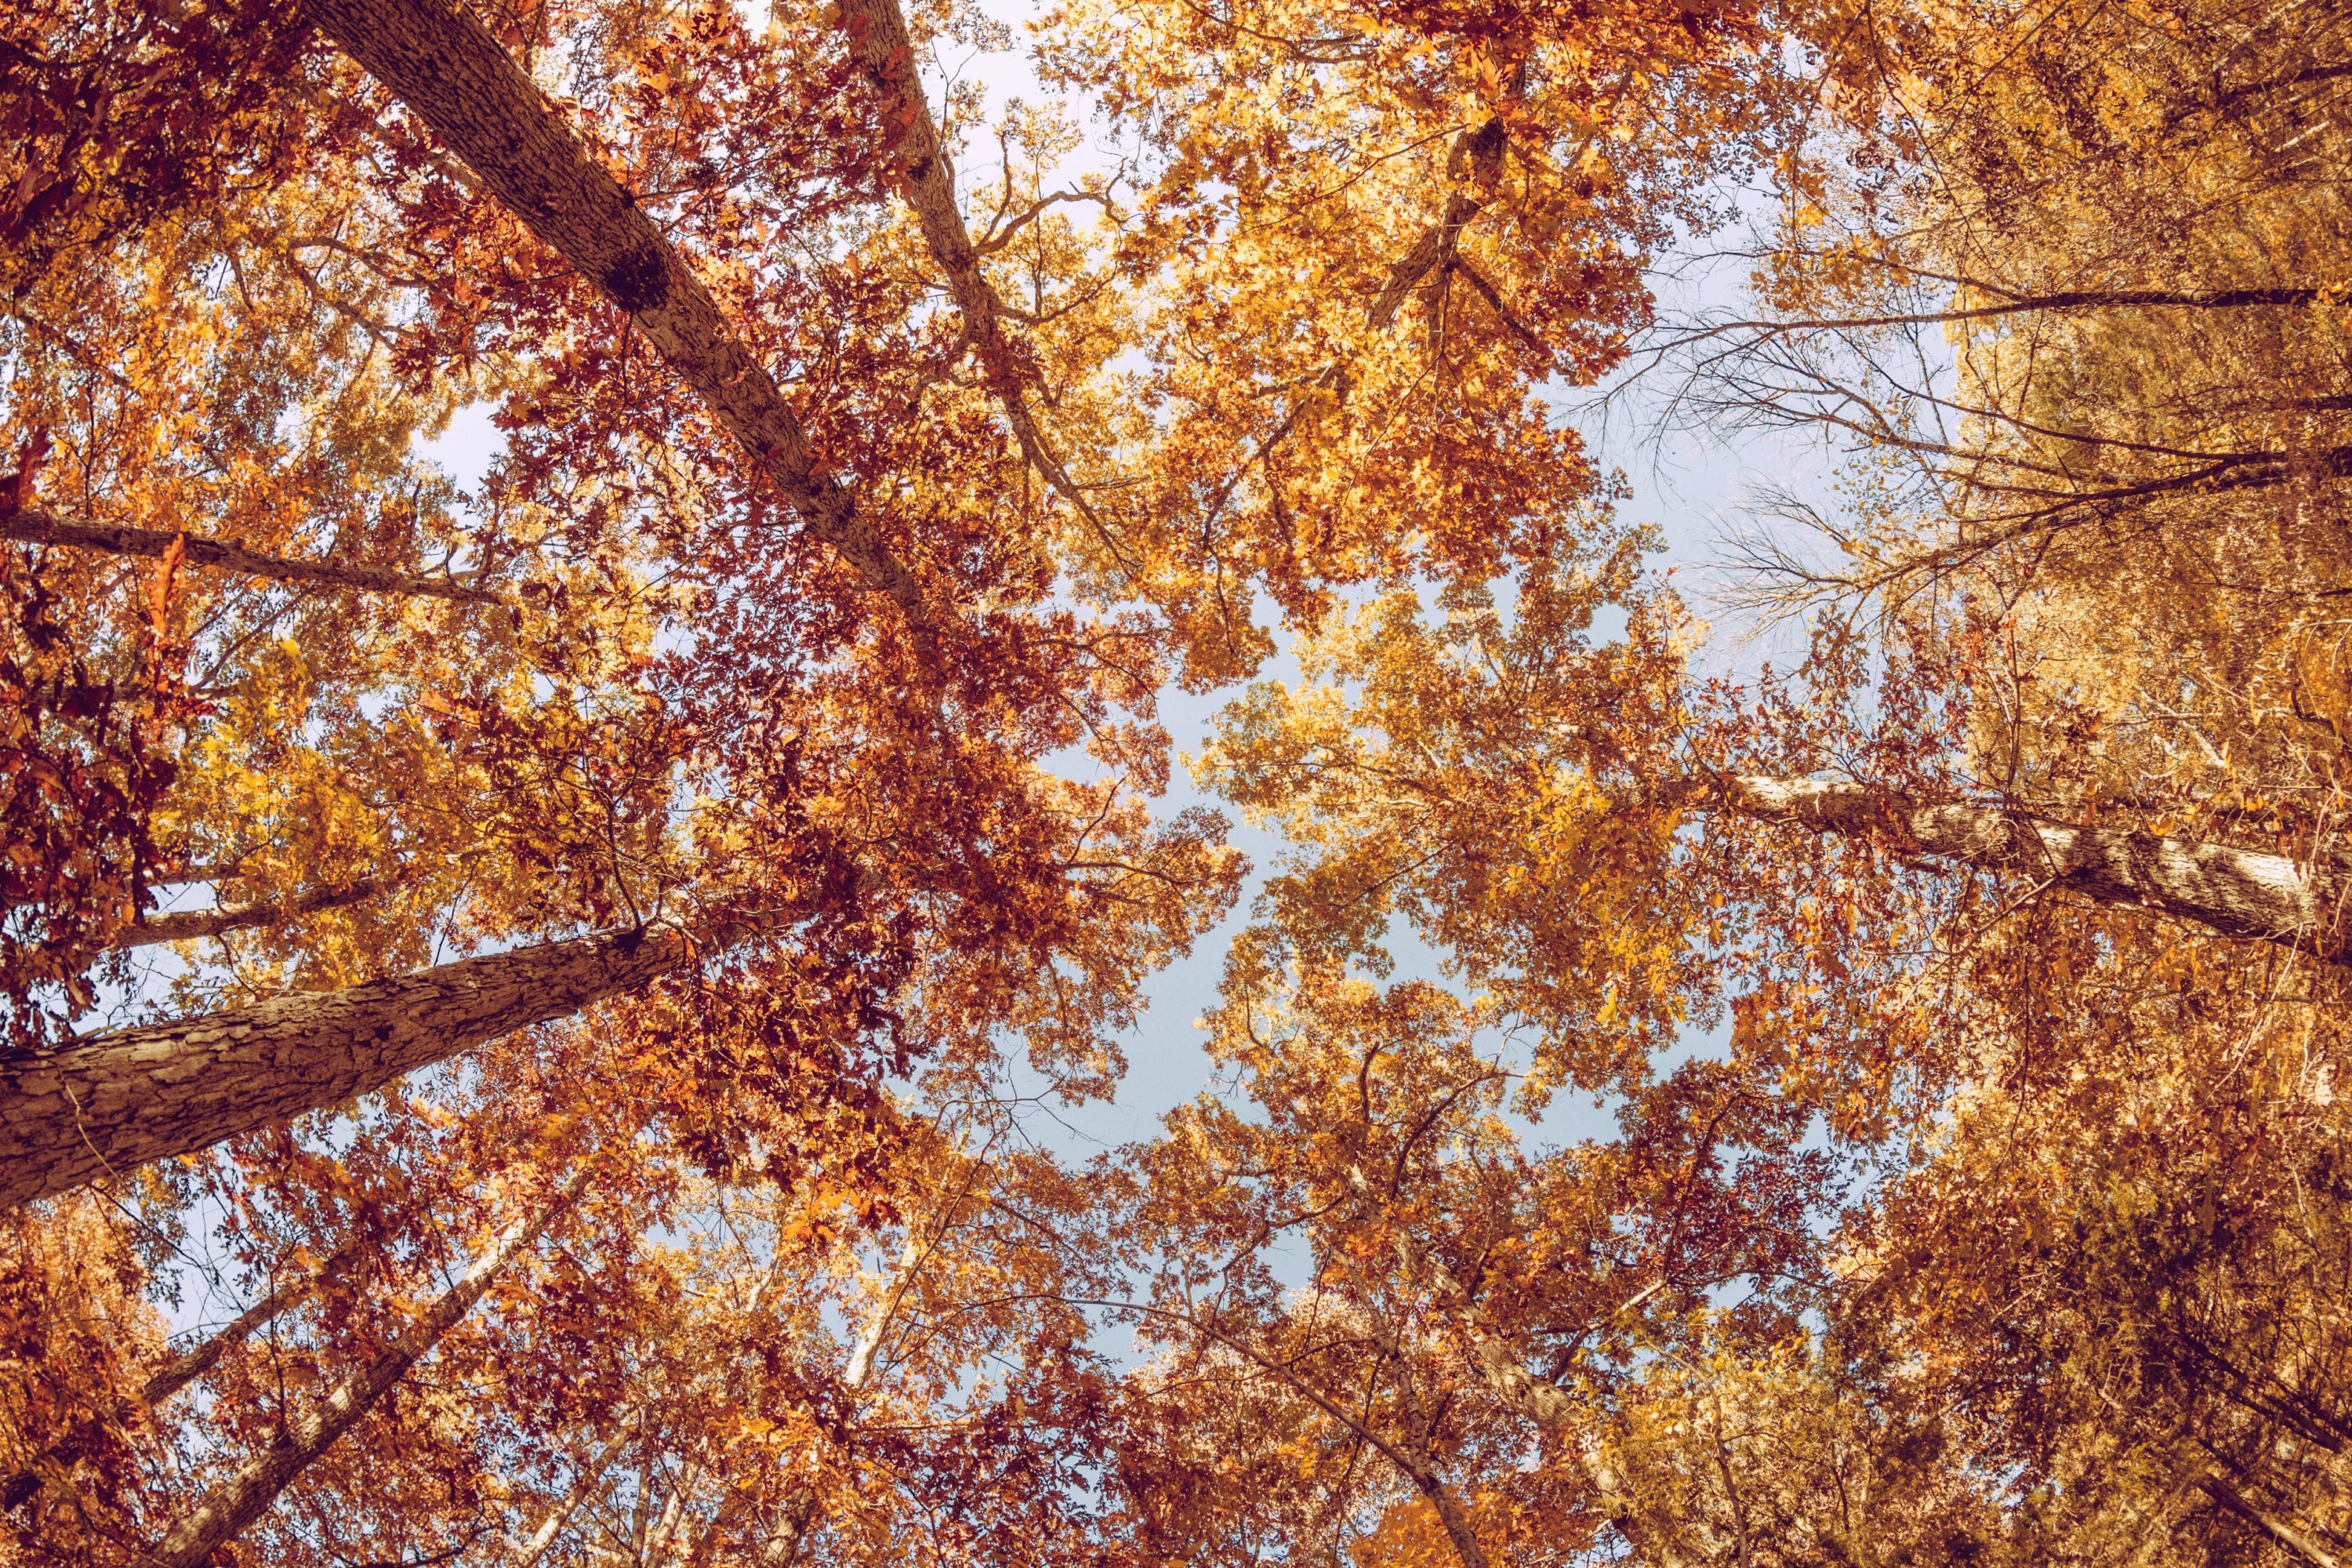 Looking up at the tops of trees full of yellow and orange leaves in the fall